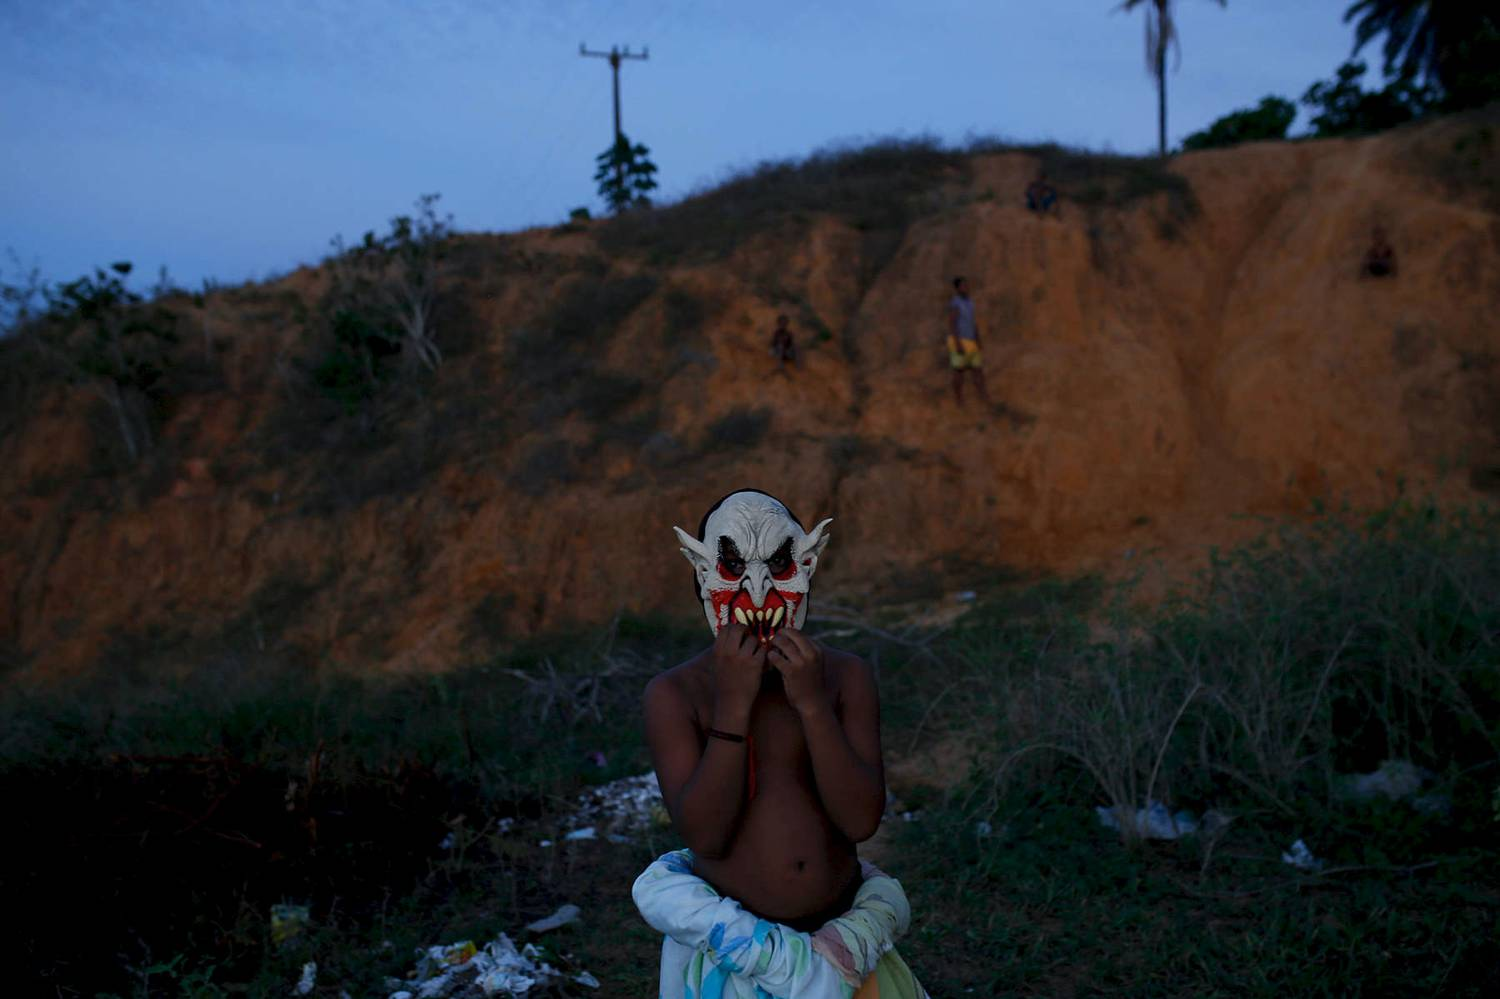 Photo: Stephanie Foden's dusk portrait of a young man wearing a devil mask.